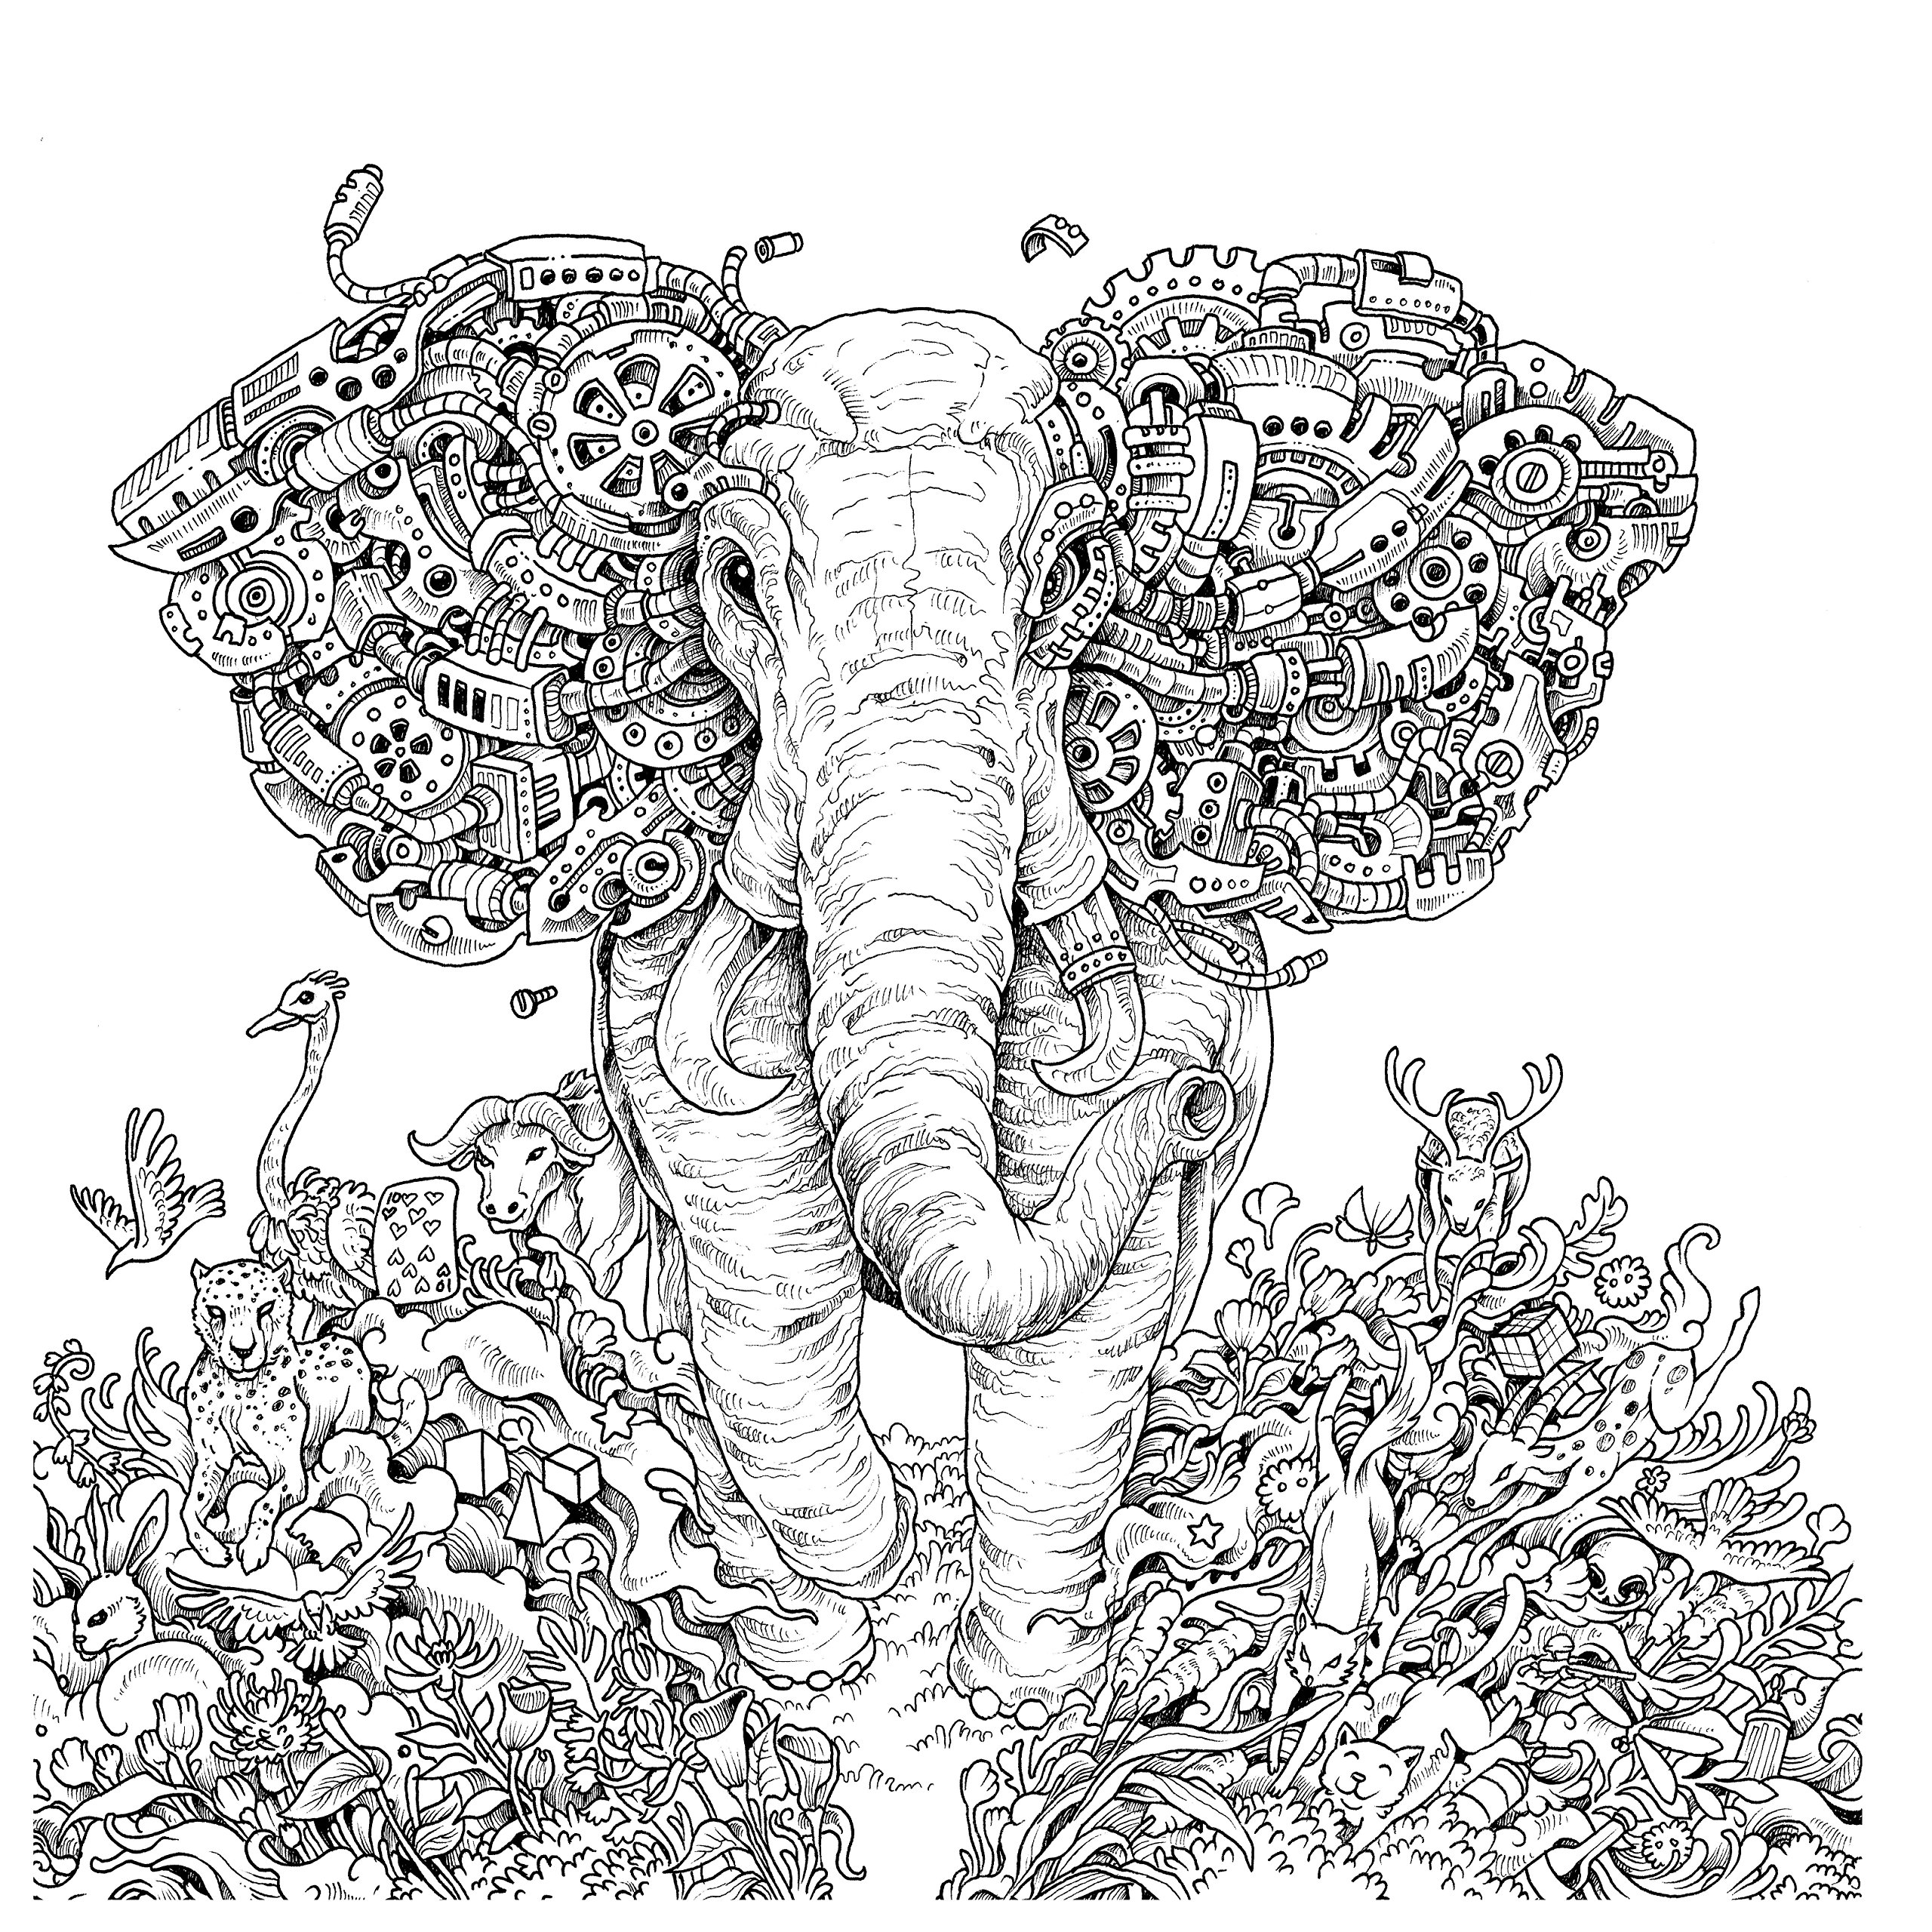 coloring book elephant images elephant coloring pages free download on clipartmag coloring elephant images book